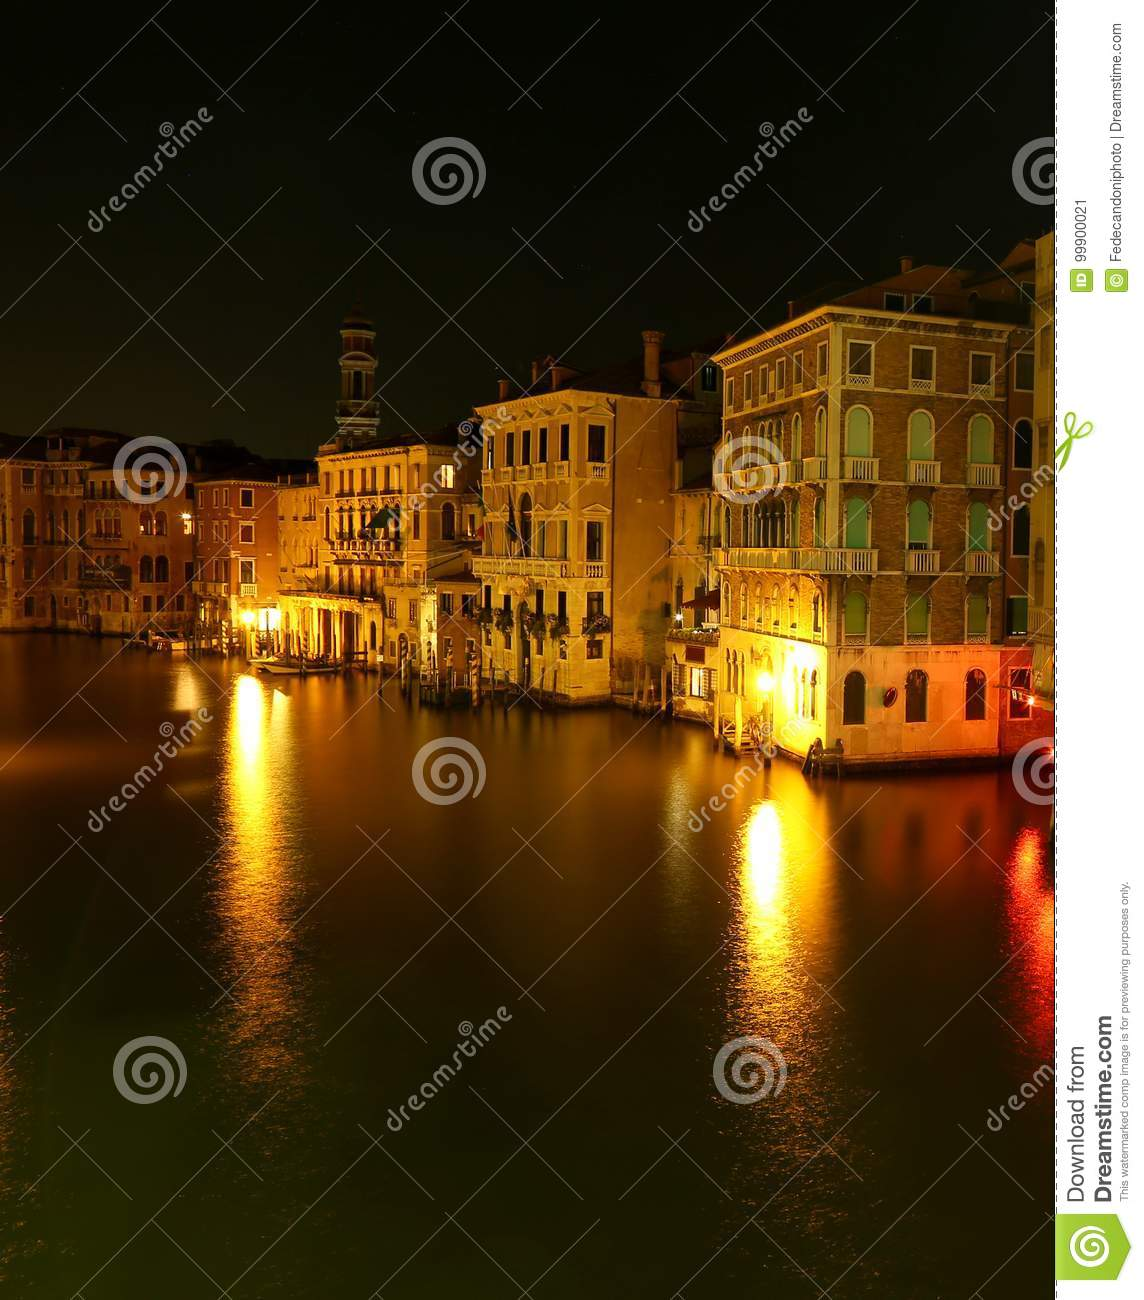 illuminated houses with reflection on the Grand canal of VENICE